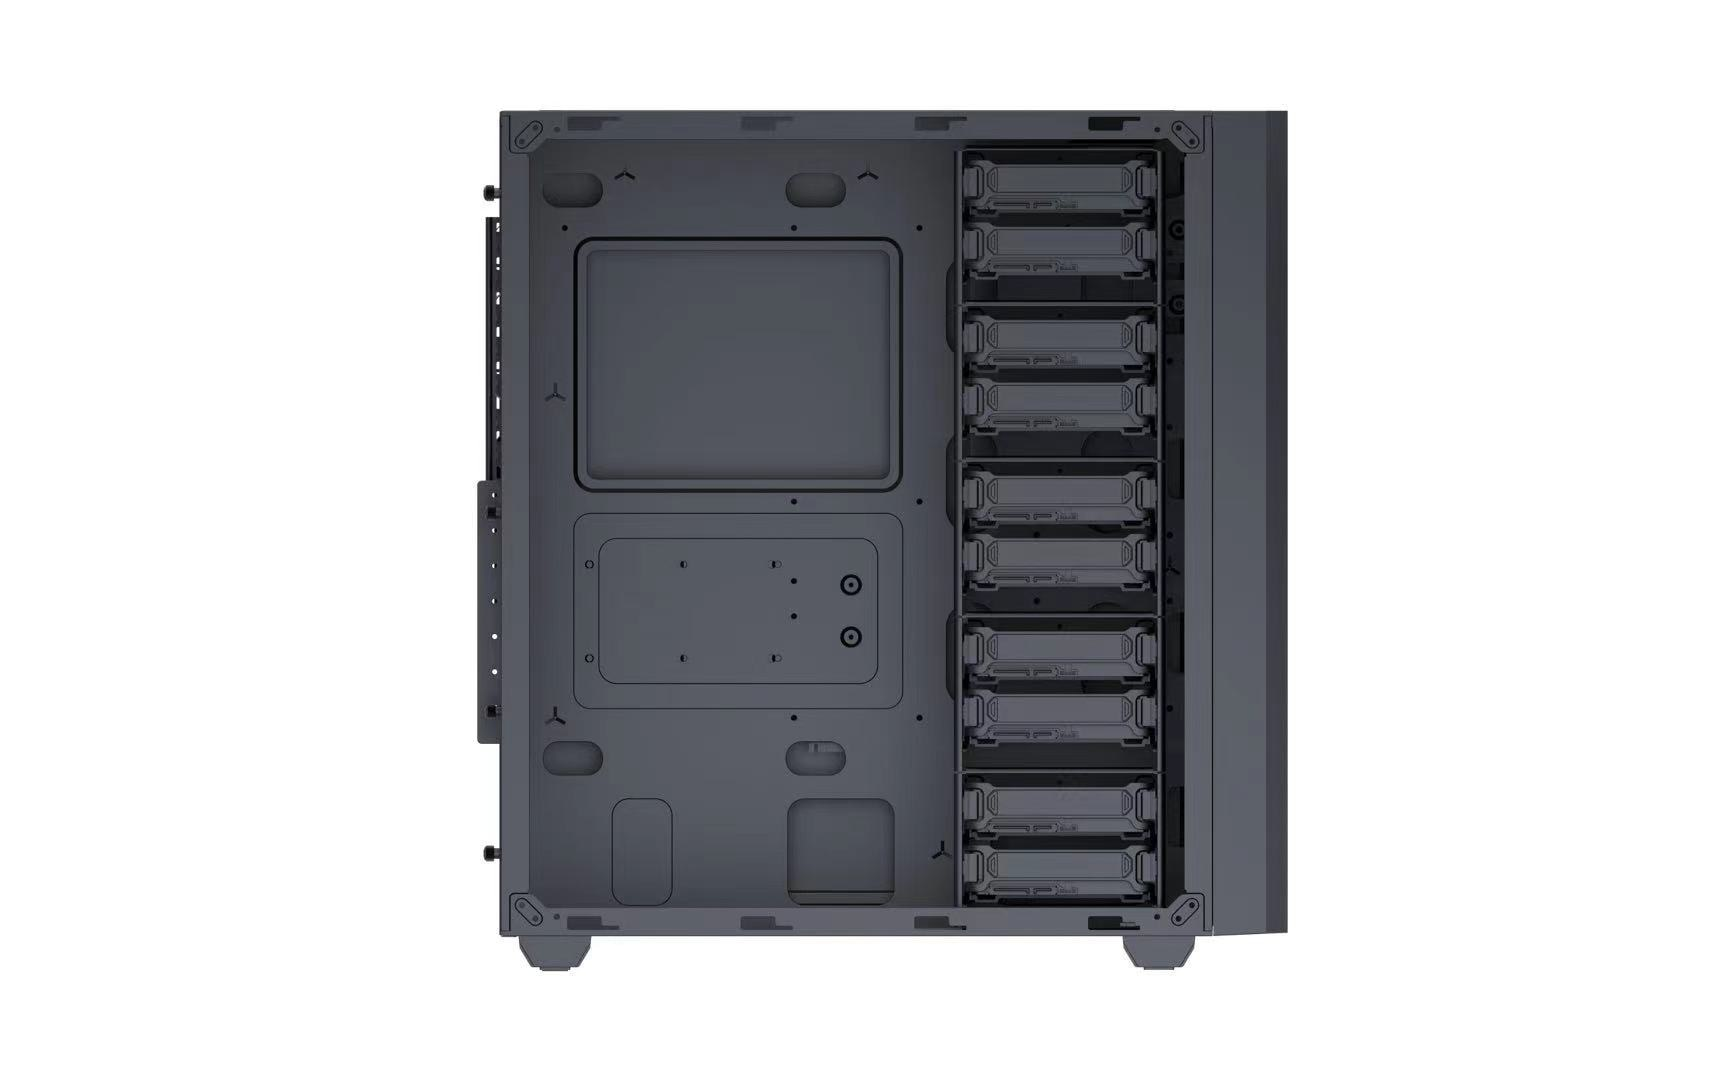 Mining CHIA Coin Storage Server Add Your Own HDD,2xE5-2678V3,12 Core,24 Thread.32GB ECC DDR3, 650W,Support 16T,Plot 3-3.5T/Day